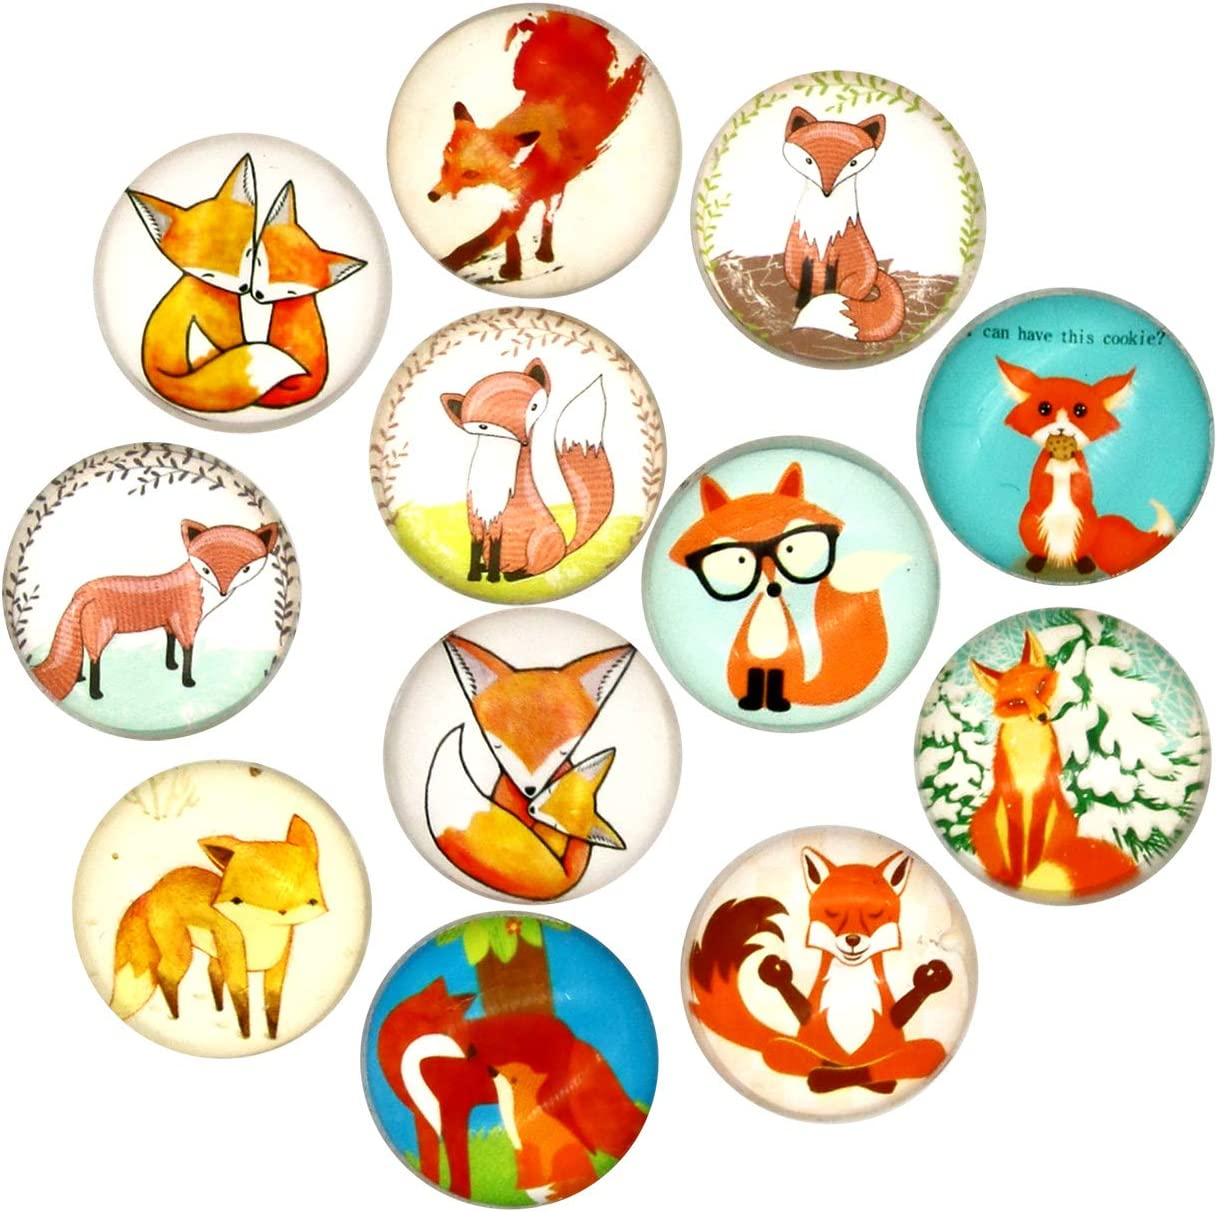 12pcs Fox Refrigerator Magnets, Cosylove Crystal Glass Fridge Magnets for Office Cabinets, Whiteboards, Photos, Beautiful Decorative Magnets for Holiday Gift, Decorate Home (Fox)